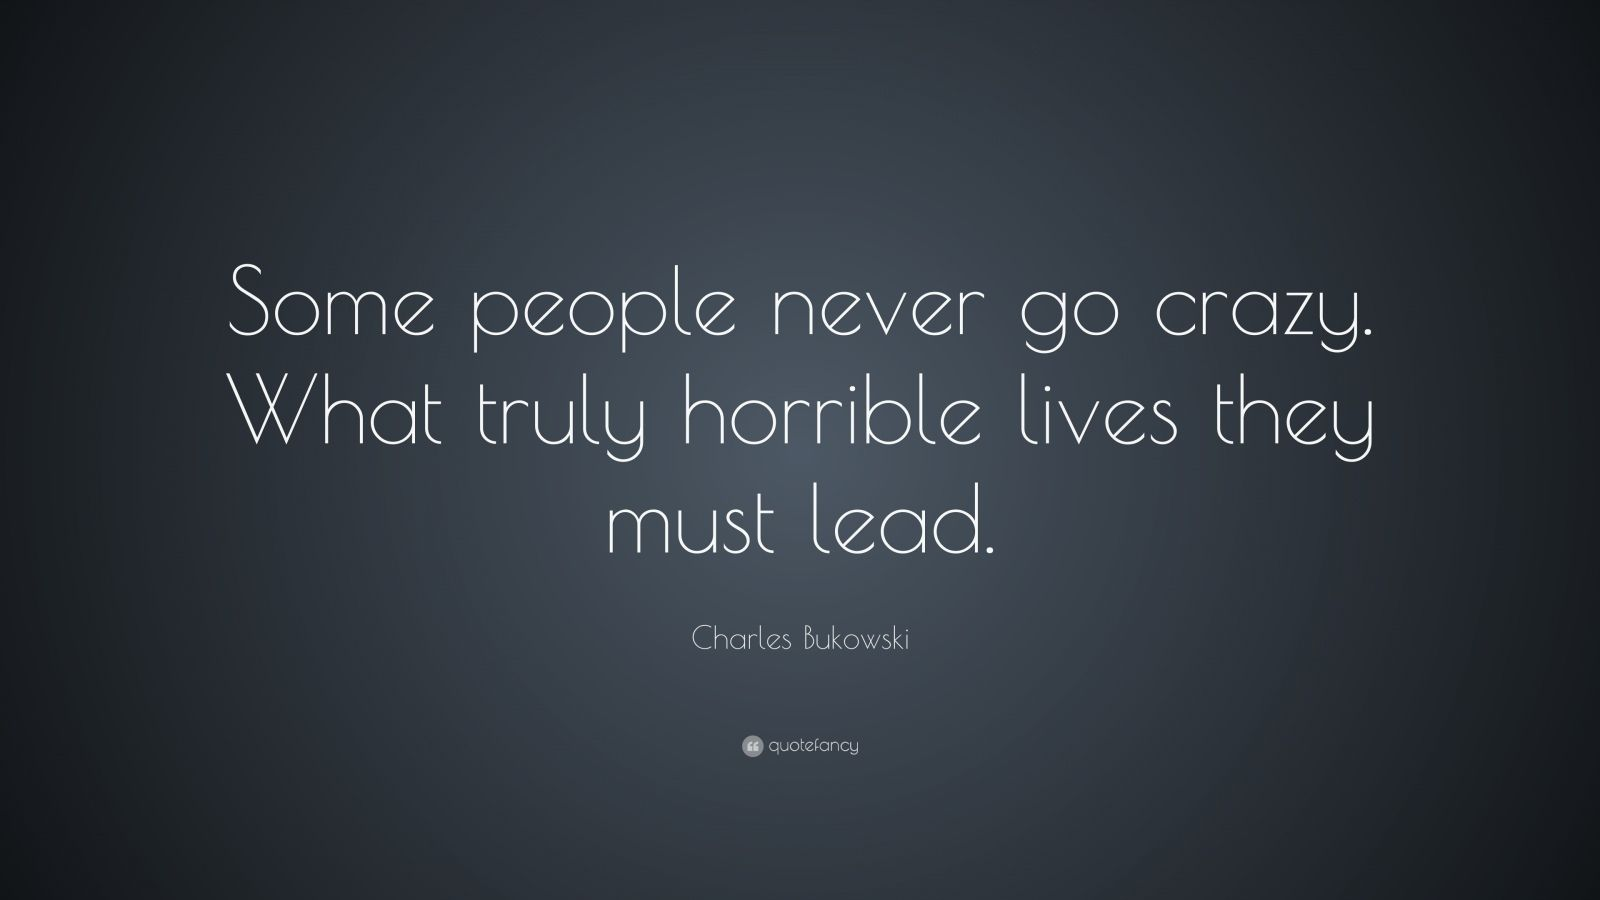 Shakespeare Wallpapers With Quotes Charles Bukowski Quote Some People Never Go Crazy What